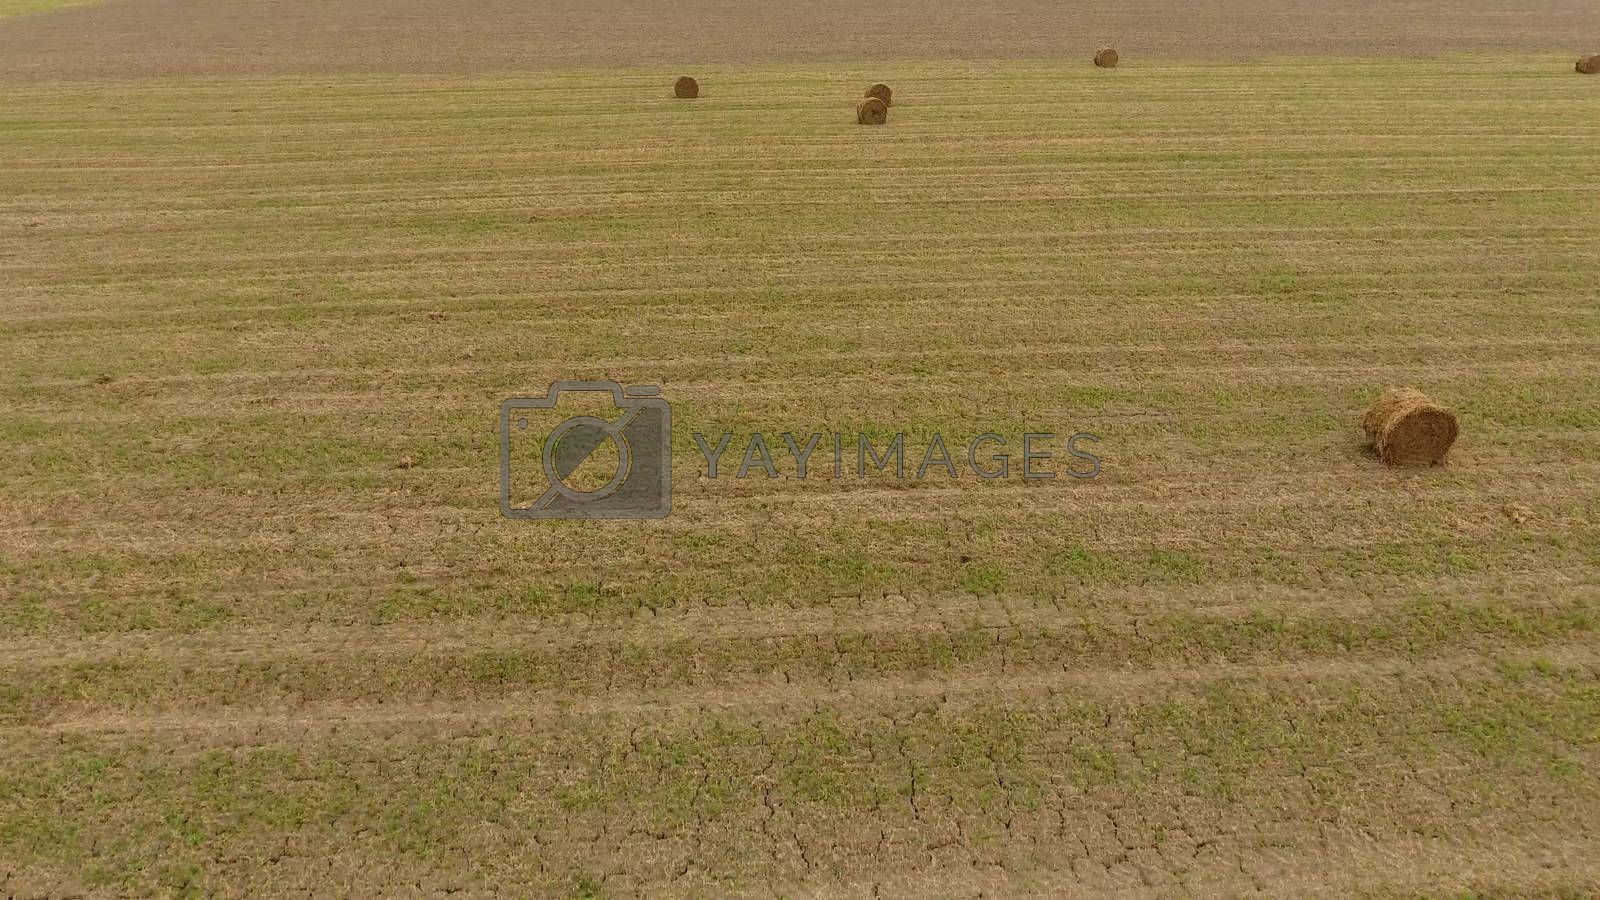 Bales of hay in the field. Harvesting hay for livestock feed. Landscape field with hay.